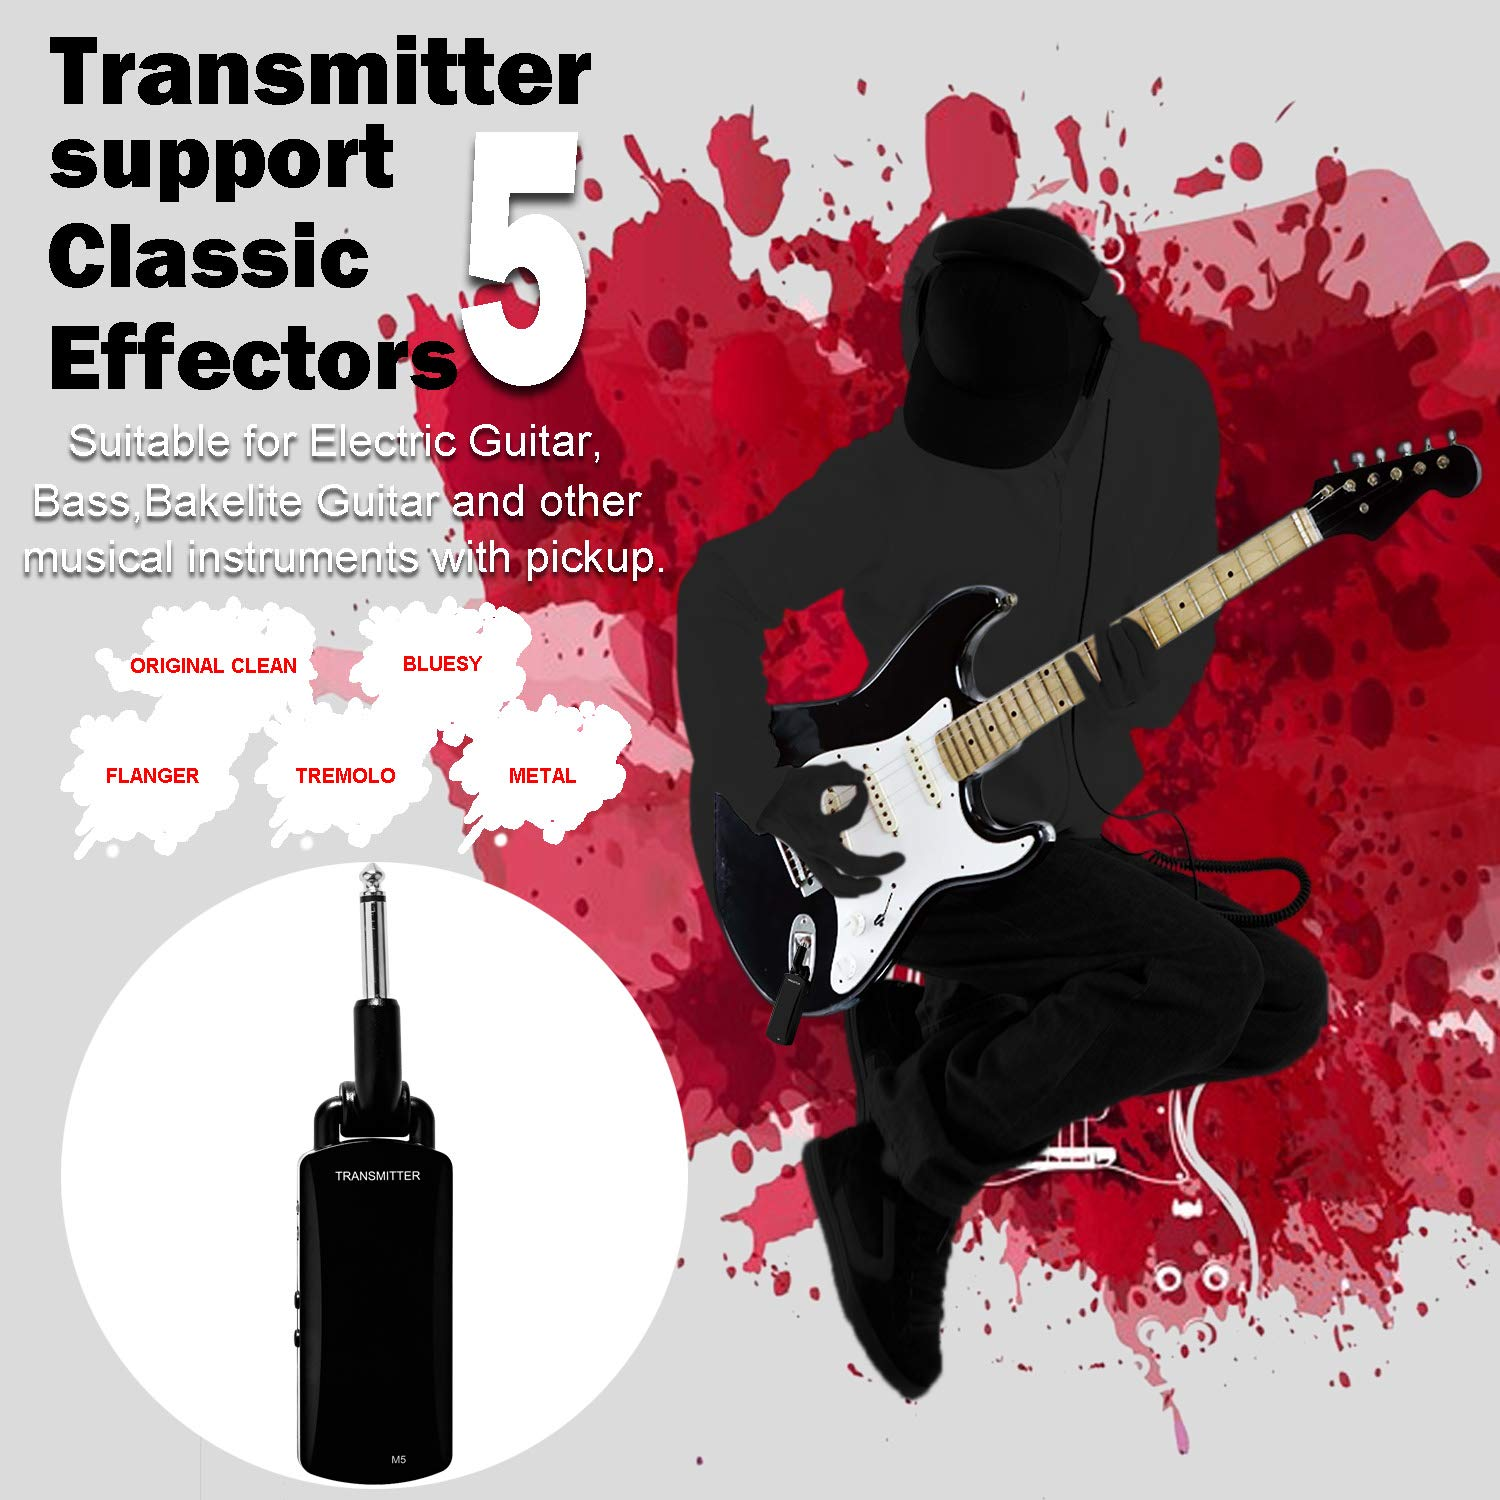 Wireless Guitar System - ZXK CO 5.8GHz Rechargeable Guitar Wireless Audio Transmitter Receiver - Electric Digital Guitar System Transmitter Receiver Set by ZXK CO (Image #6)